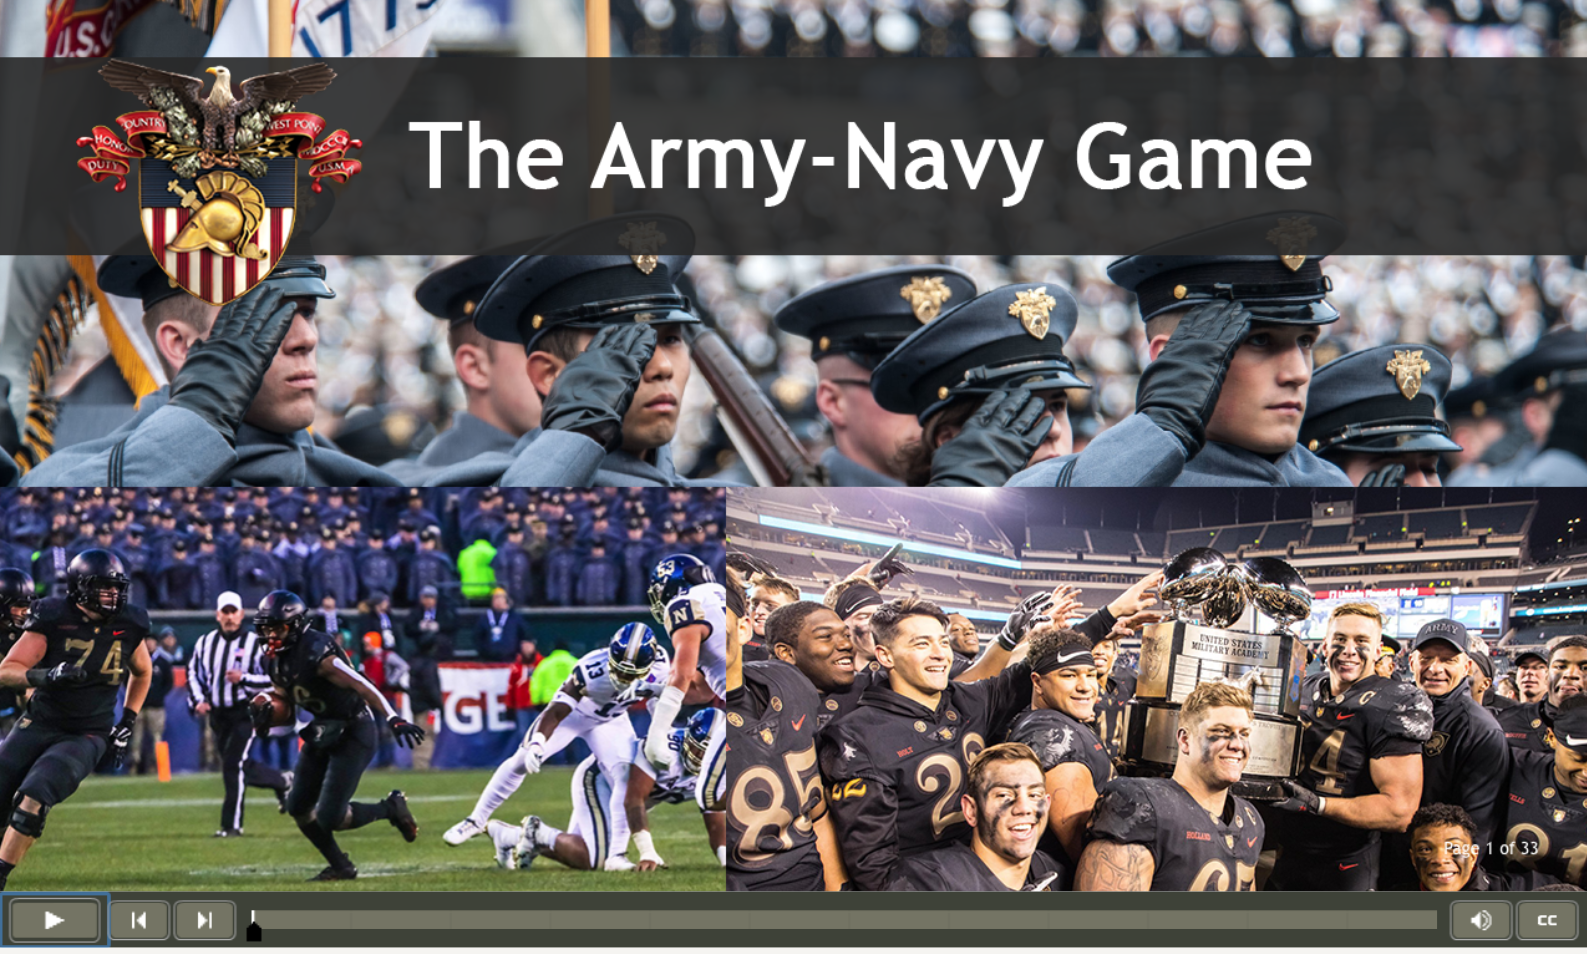 Start page for The Army-Navy Game